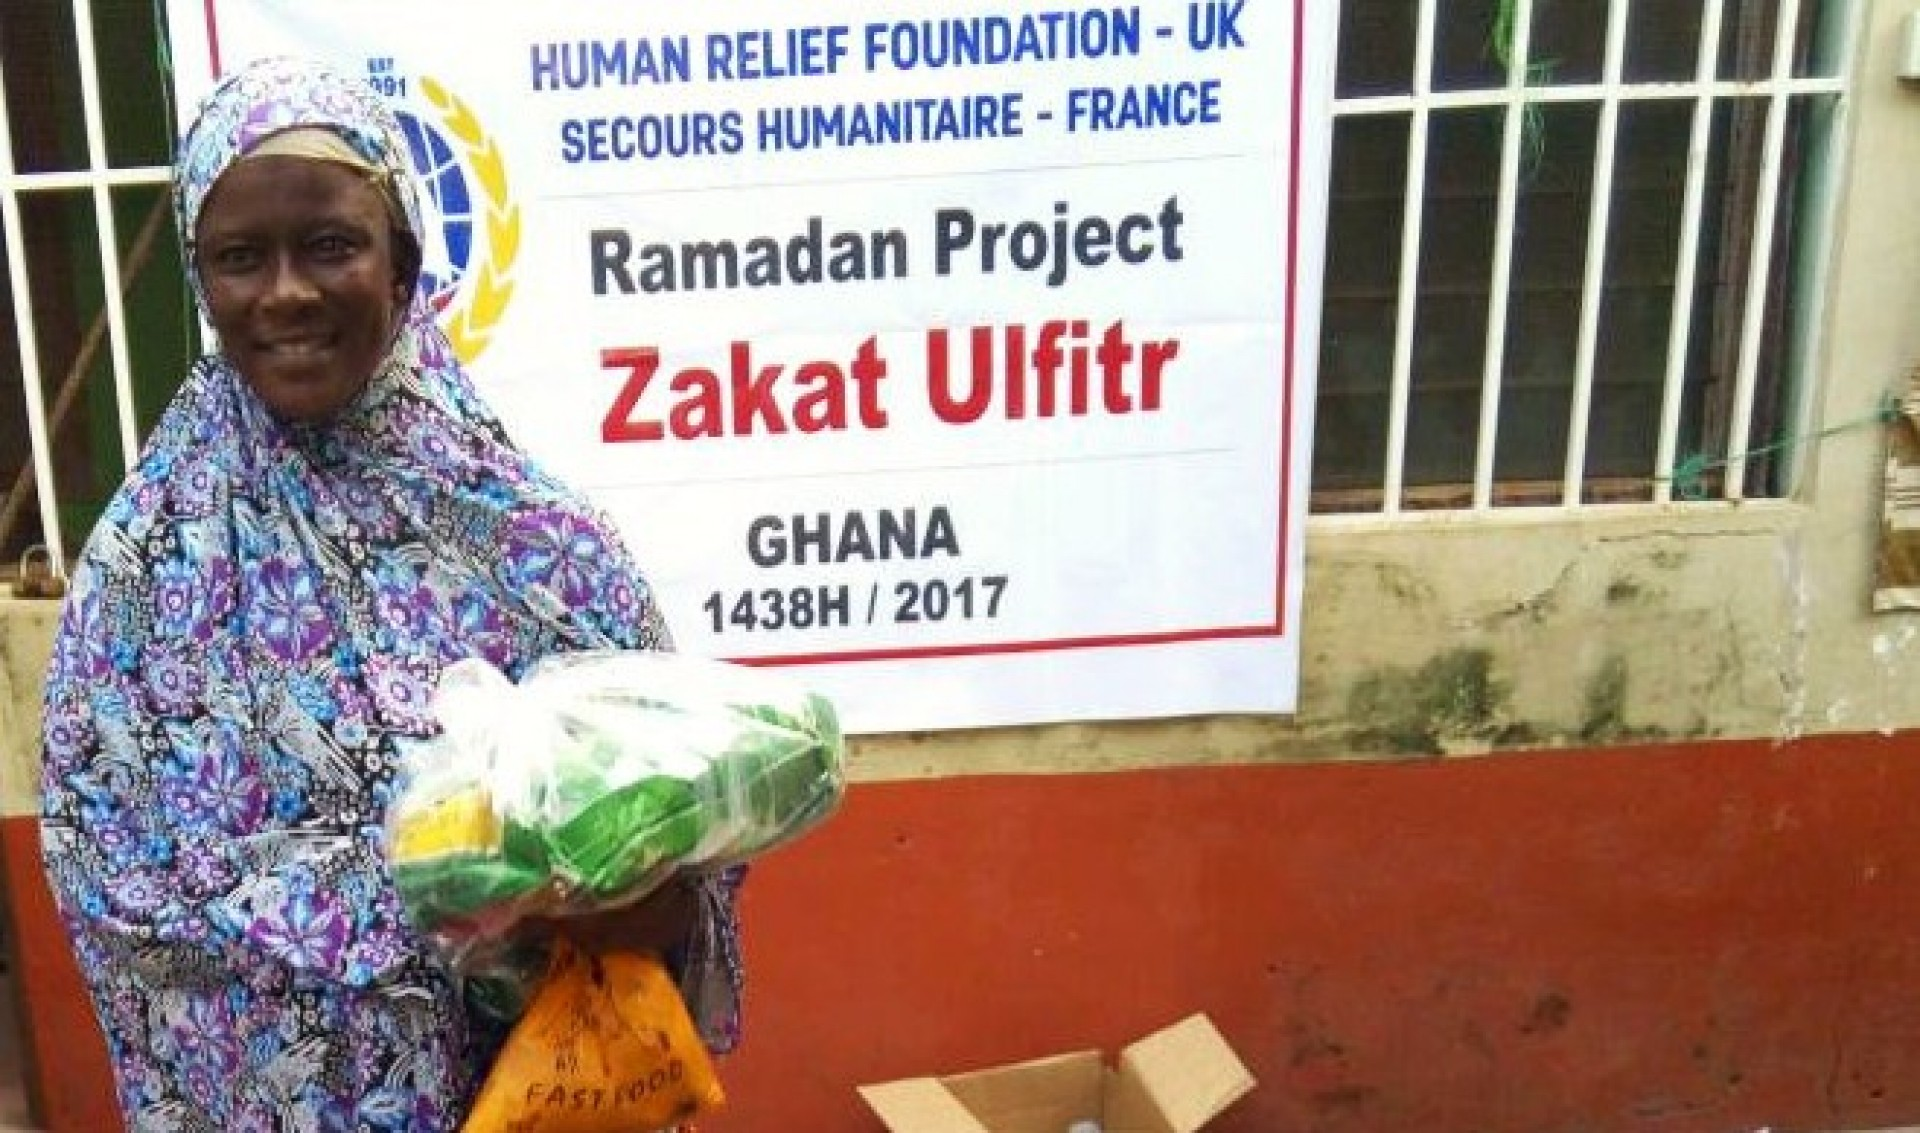 Ghana Ramadan Human Relief Foundation